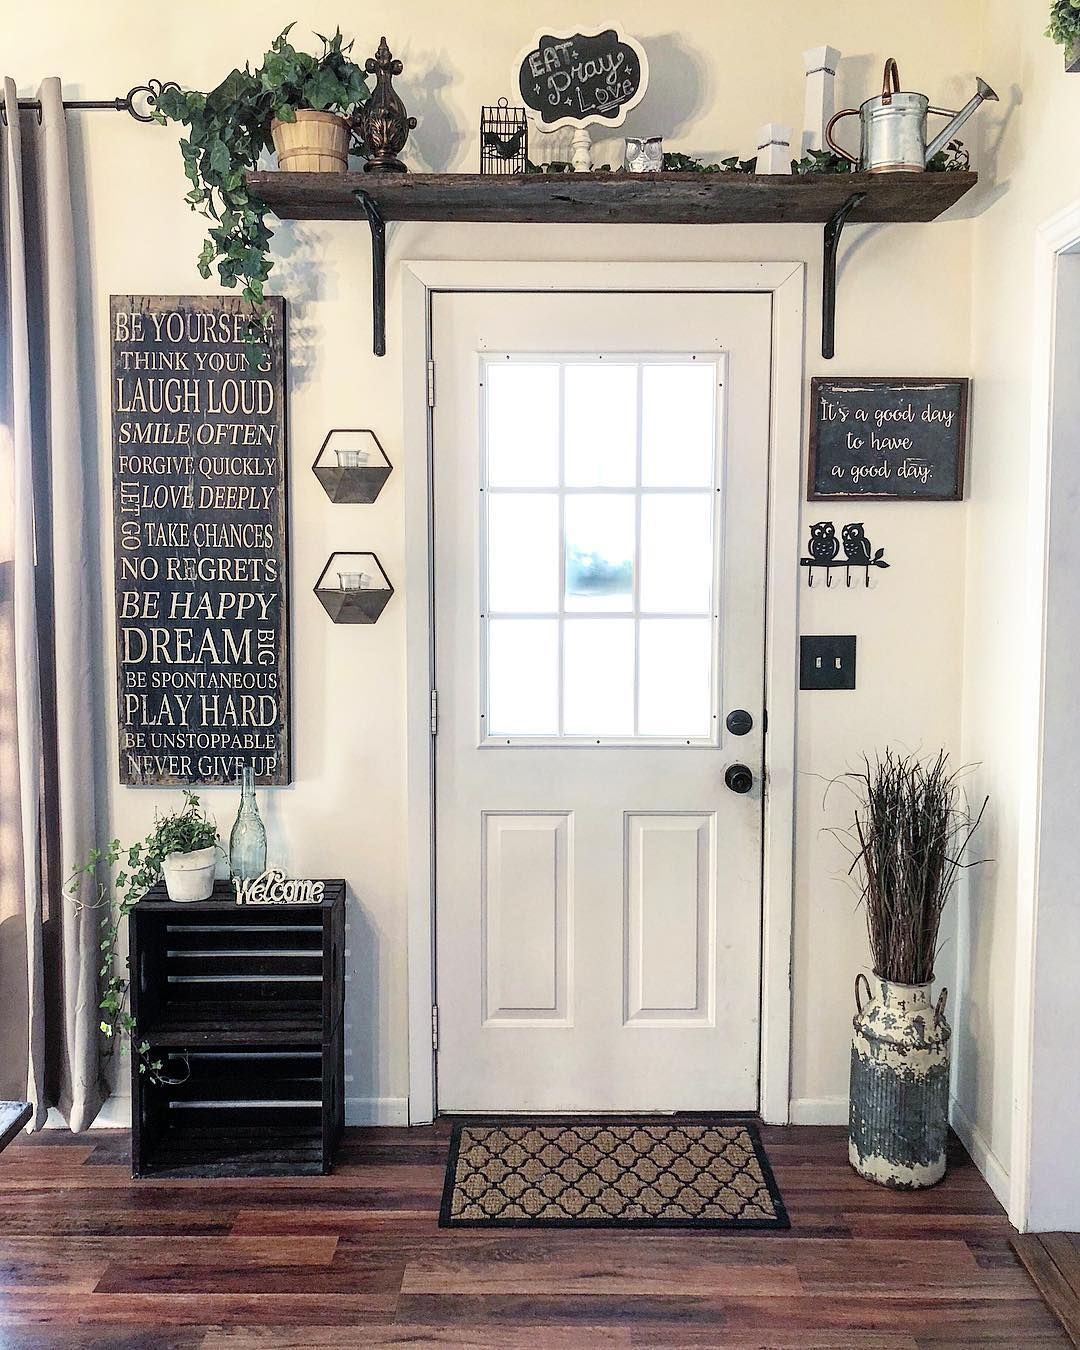 Krystal on instagram  chappy sunday friends  hope you all have  also five rustic bathroom ideas to try at home rh pinterest